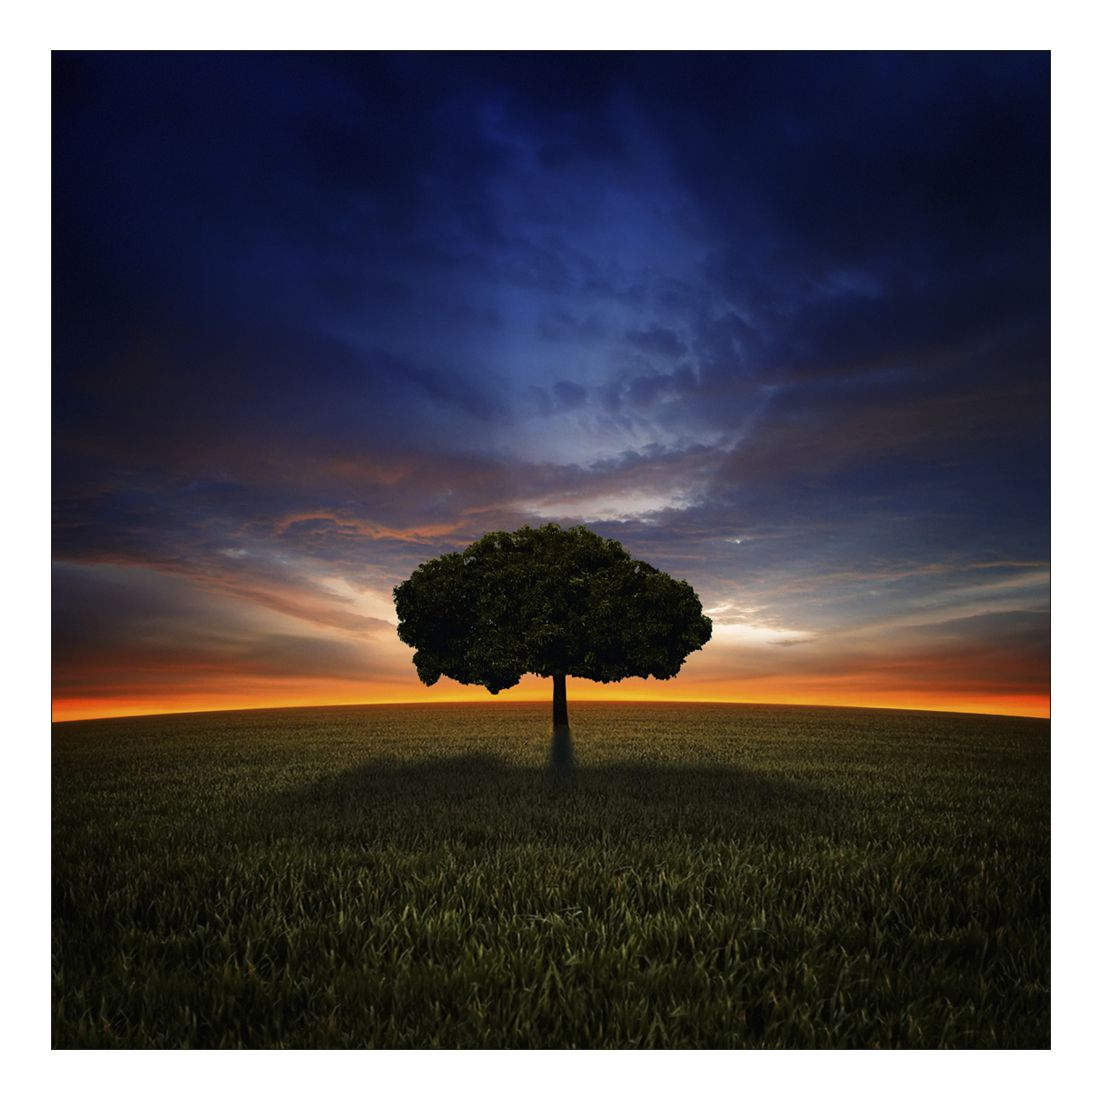 Leinwandbild MYSTICAL TREE ON FIELD – Abmessung 100 x 50 cm, Gallery of Innovative Art günstig online kaufen